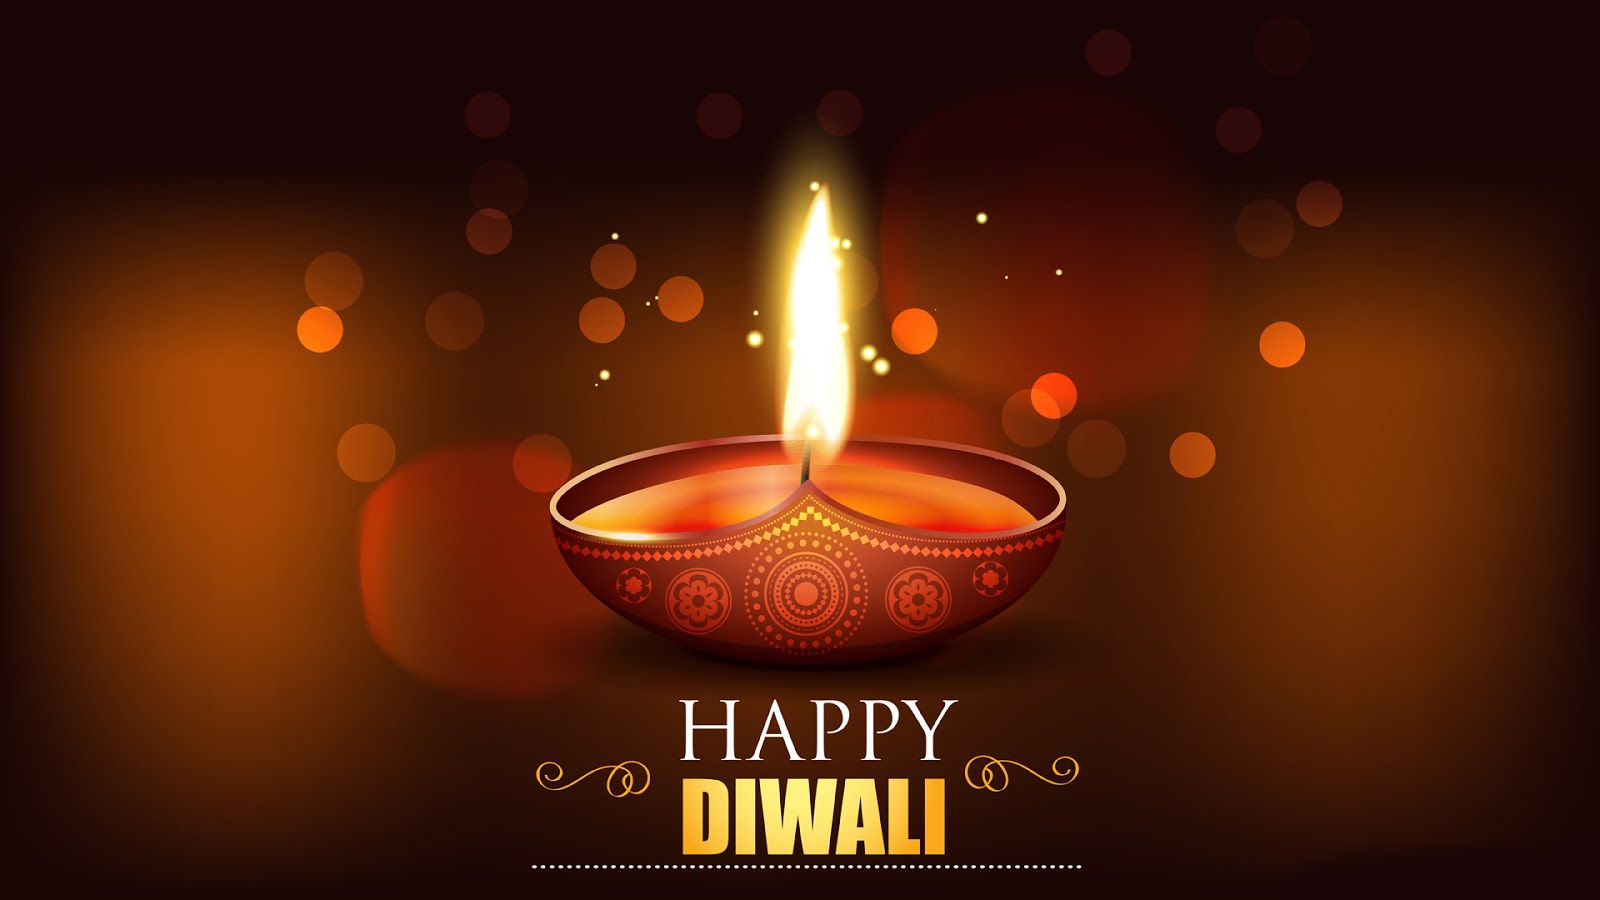 Happy Diwali Status in English for Boyfriend Happy Diwali Status for Girlfriend in English Happy Diwali Status in English for Facebook Happy Diwali Status for Whatsapp Happy Diwali Status for Husband Wishing you a Happy Diwali Status for Wife Best Status on Happy Diwali for Friends Two Line Status on Happy Diwali for GF / BF One Line Short Status on Happy Diwali for Him / Her 1000+ Happy Diwali Status in English for Whatsapp Get the Best Collection of Happy Diwali Status in English for Whatsapp & Facebook only at Updatepedia.com. Send Wishing you a Happy Diwali Status for your Loved ones.